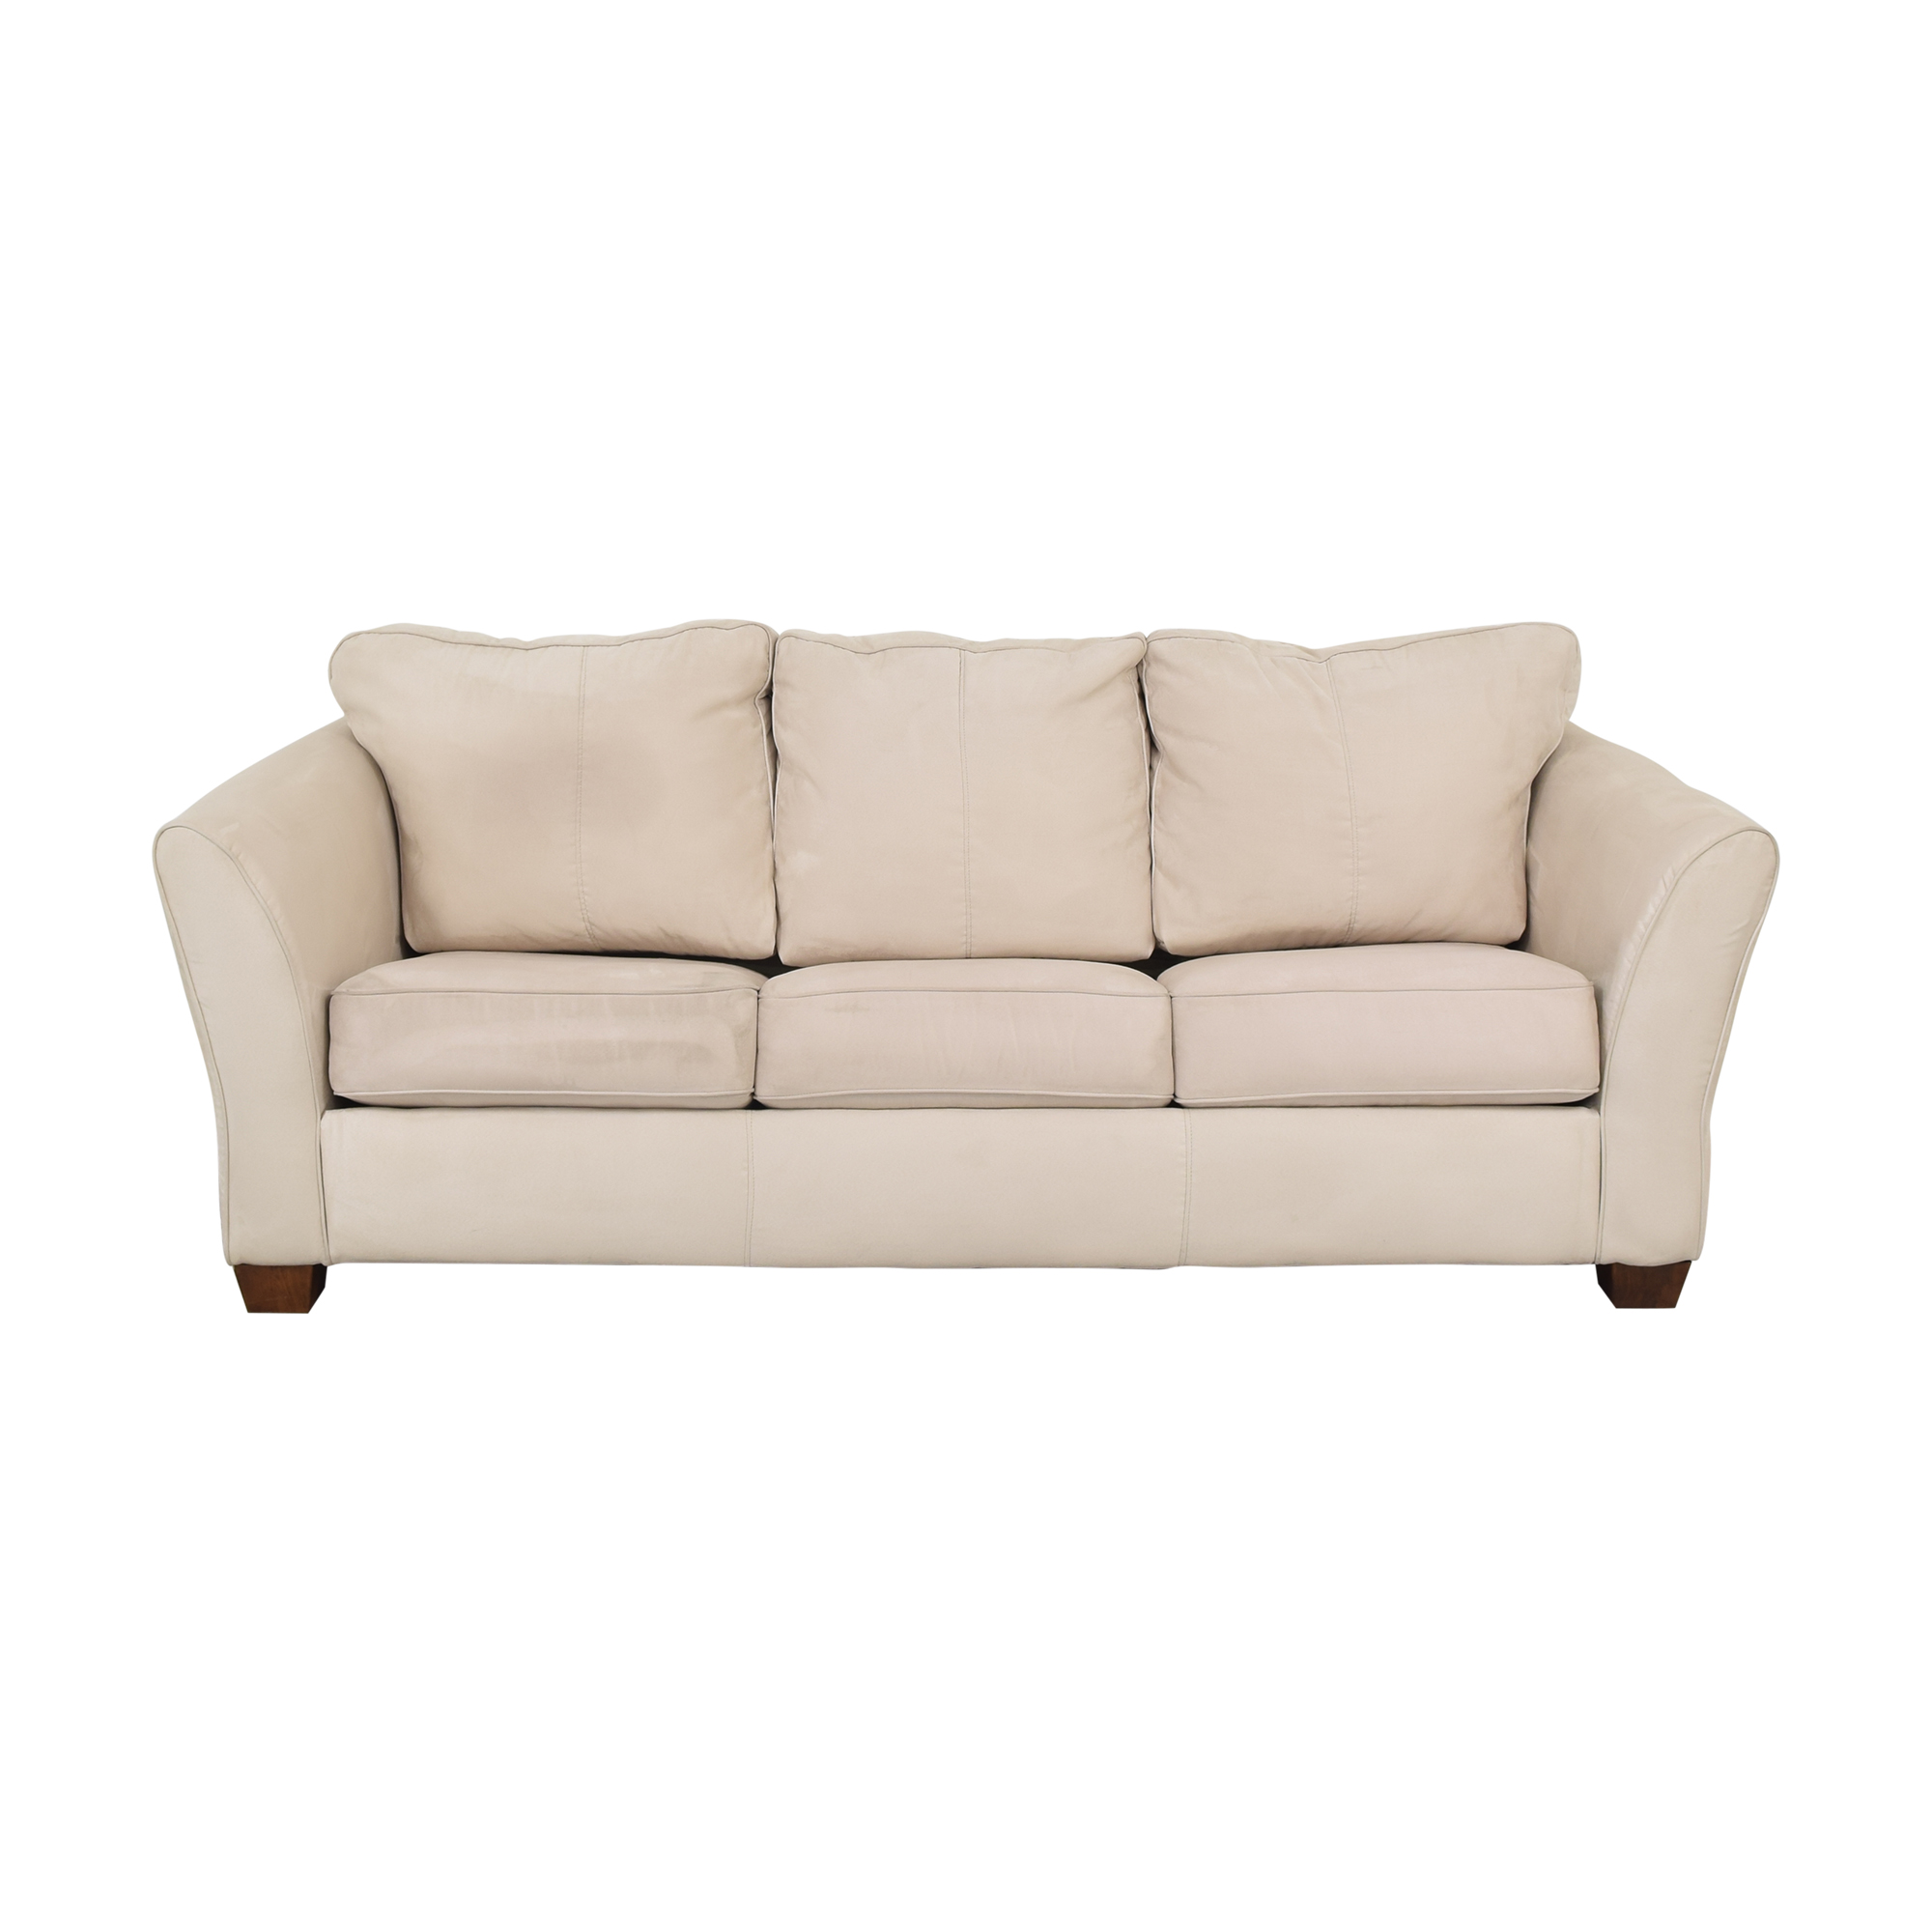 Ashley Furniture Ashley Furniture Queen Sleeper Sofa ma